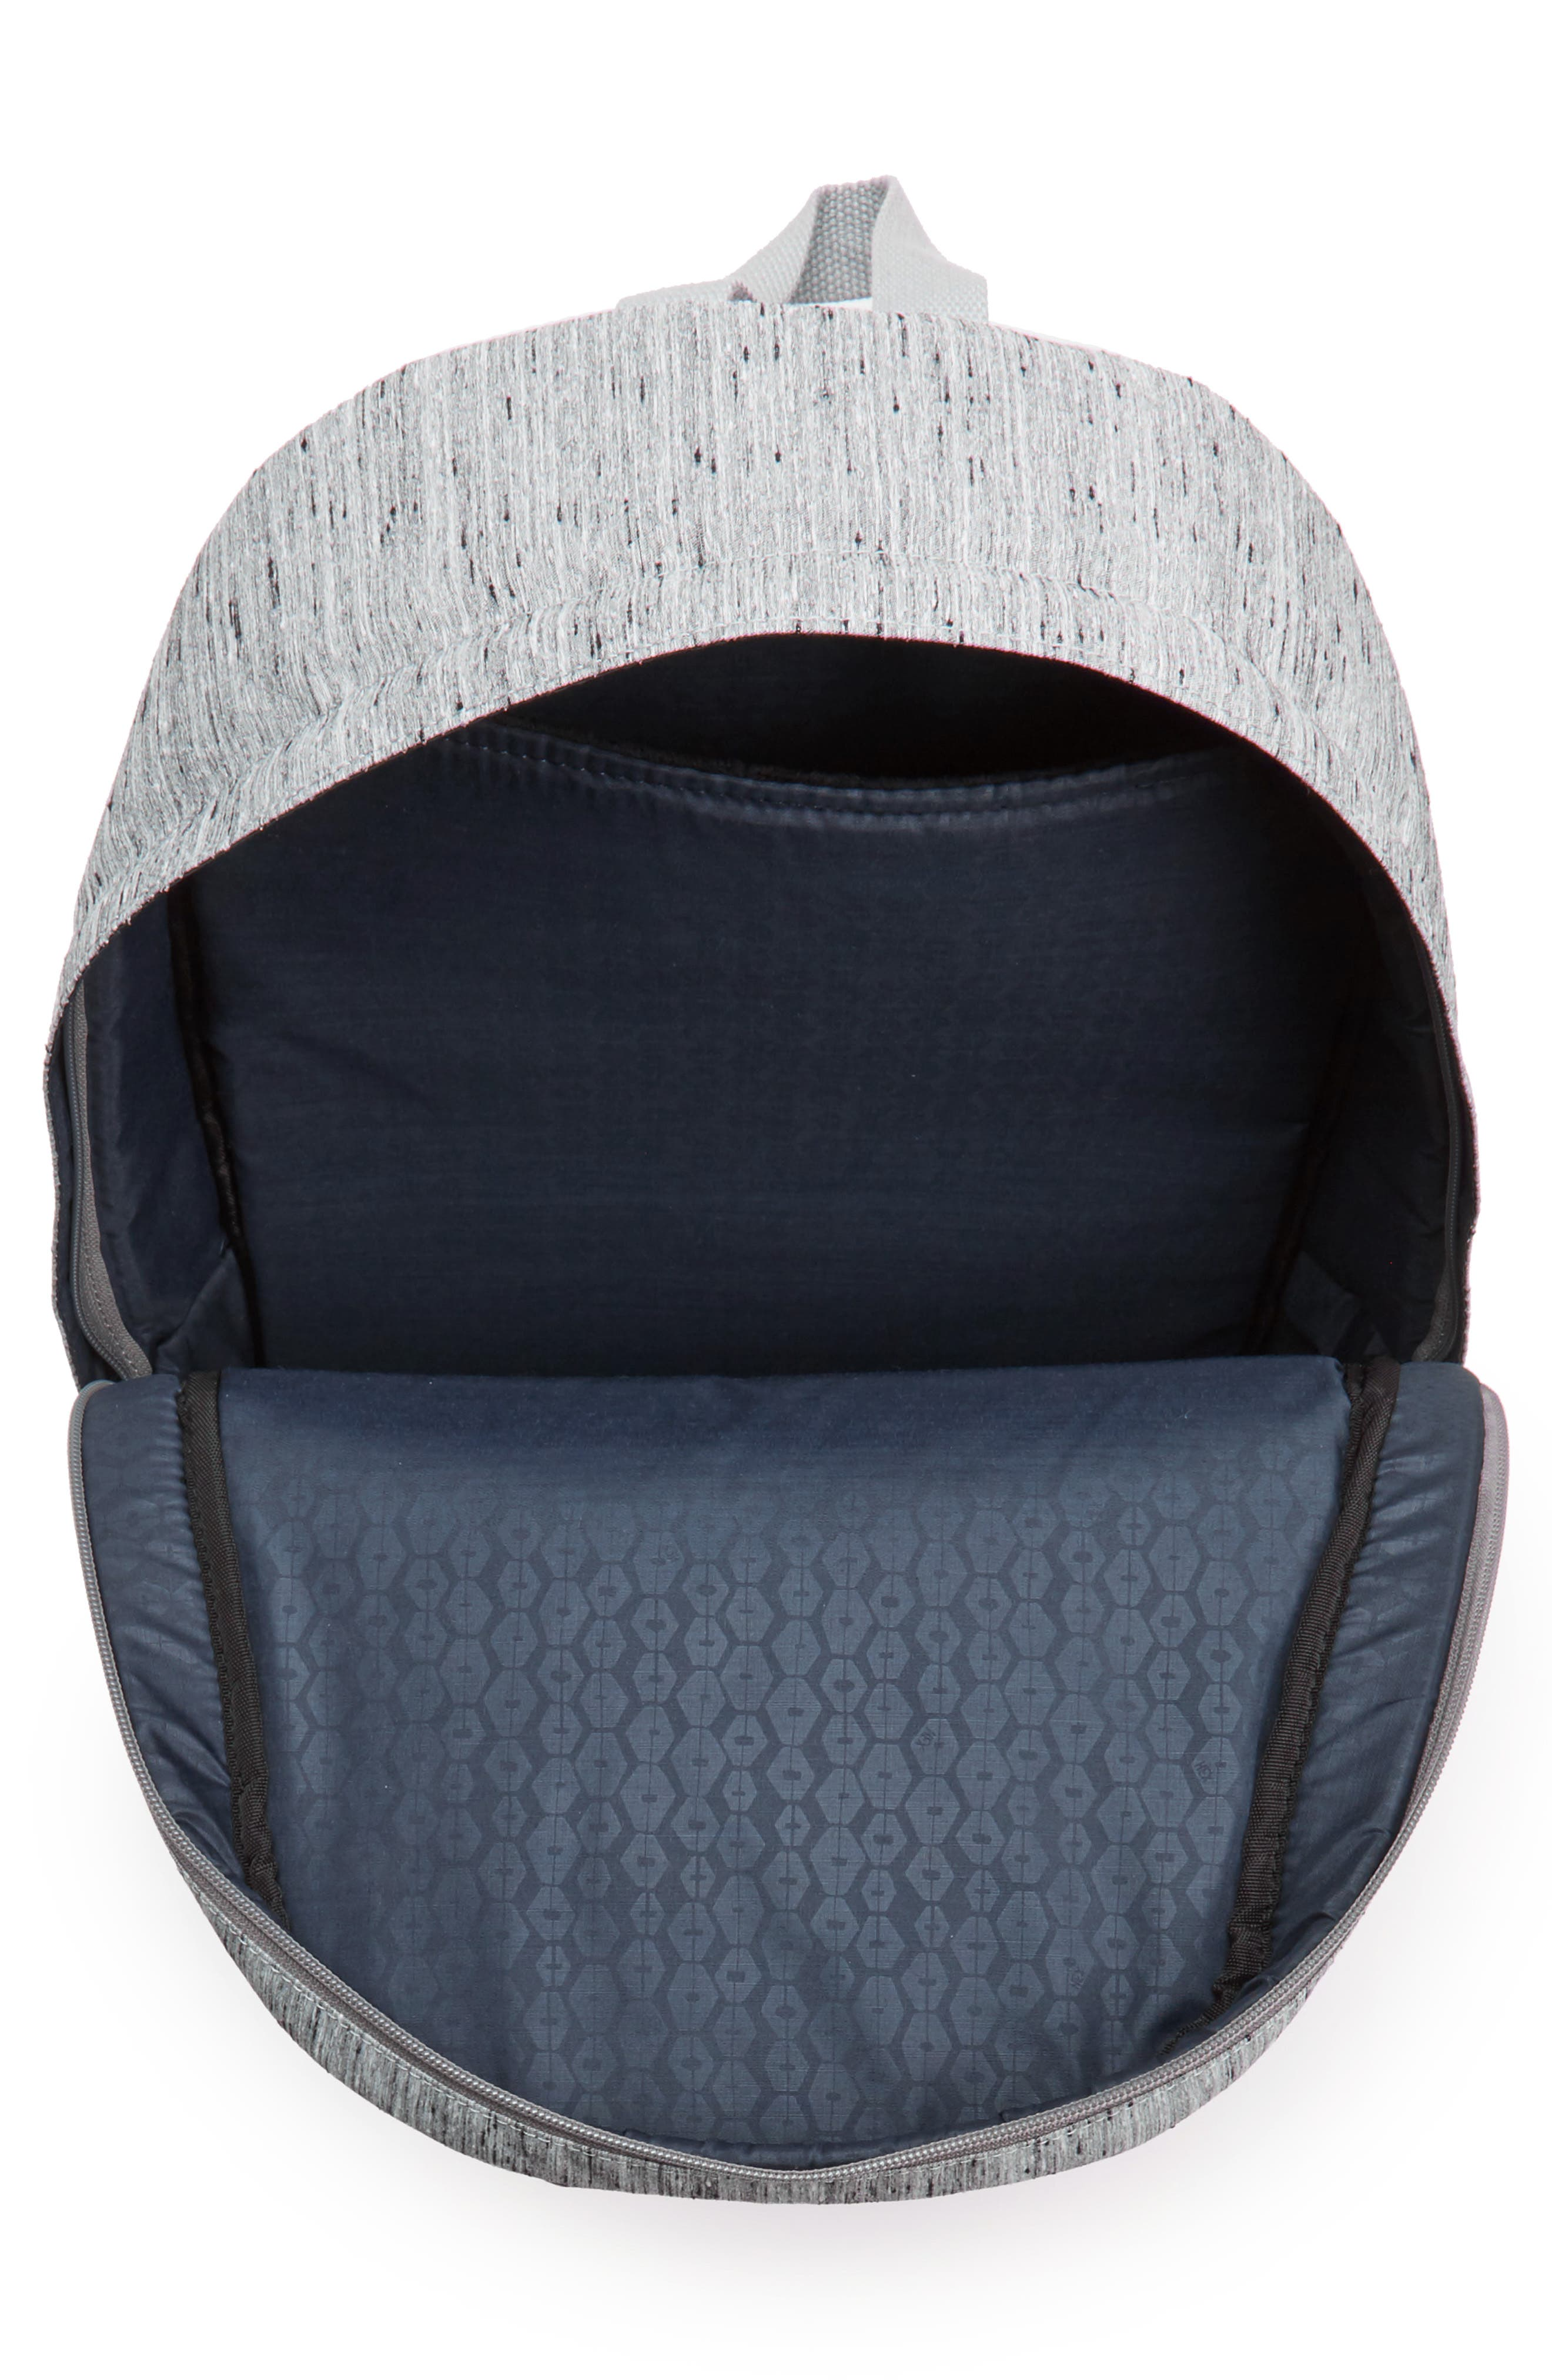 'Echo' Backpack,                             Alternate thumbnail 4, color,                             Annex Grey Slub